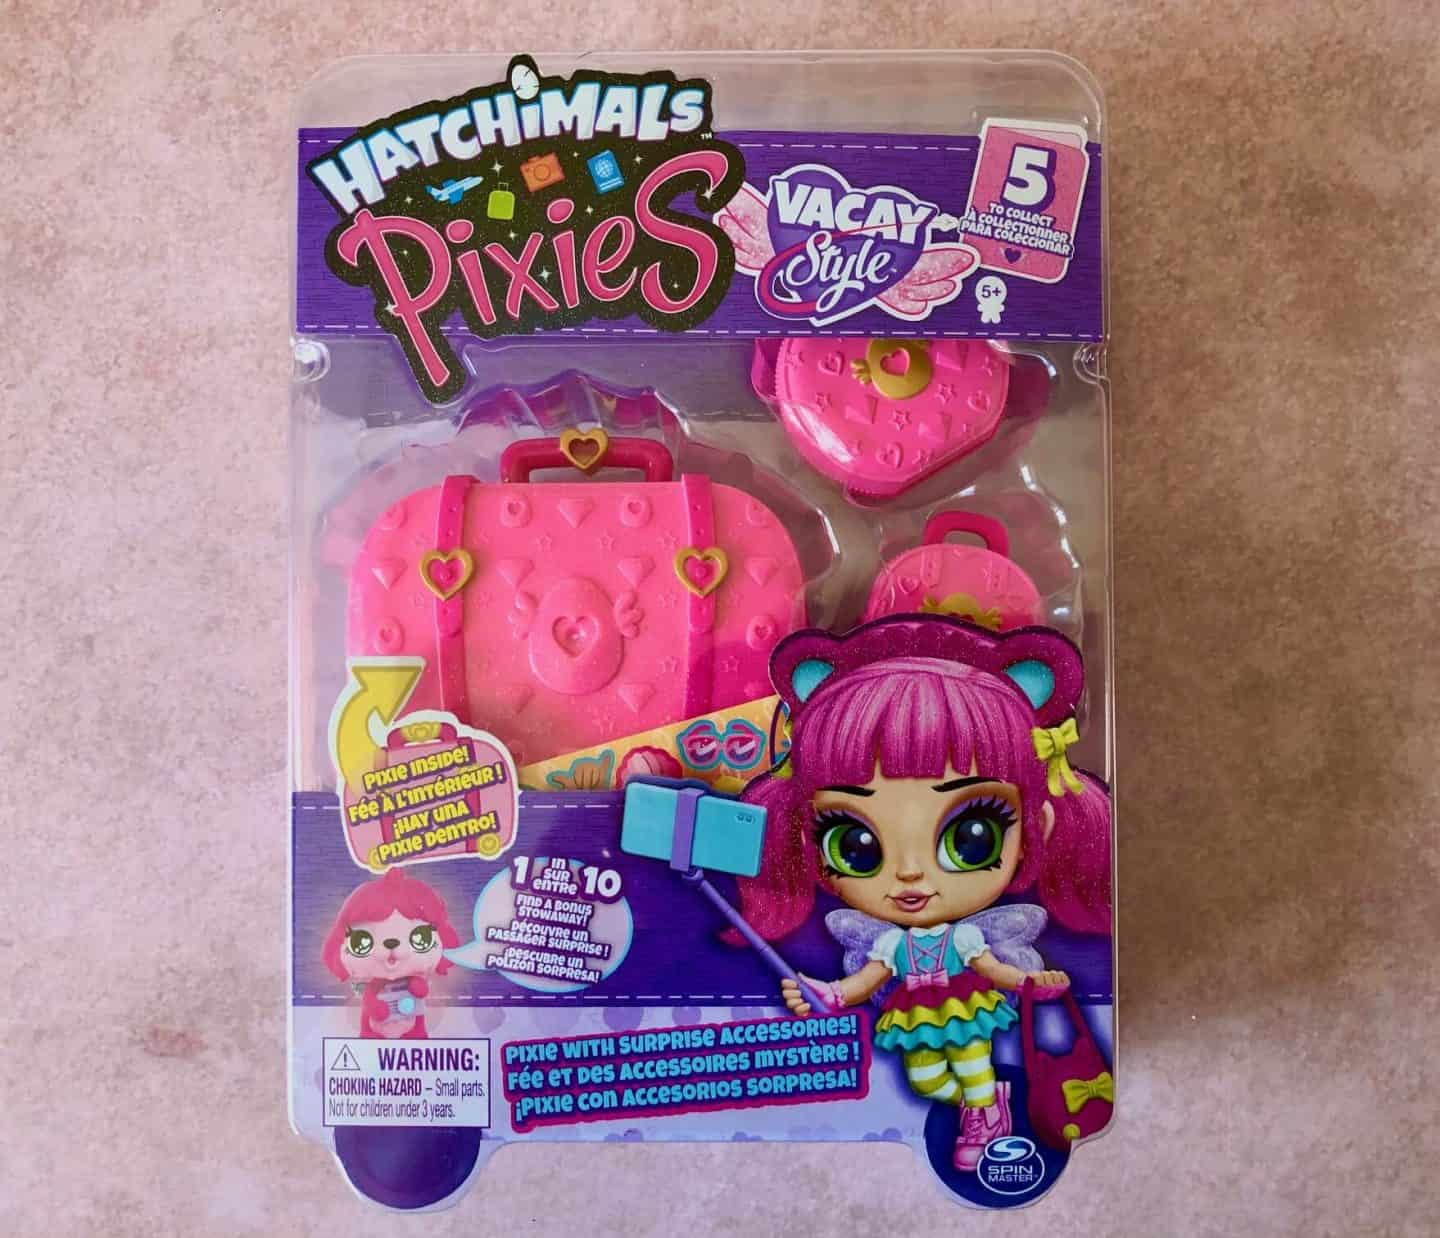 Hatchimals Pixies Vacay Style Surprise Collectible Doll - Review